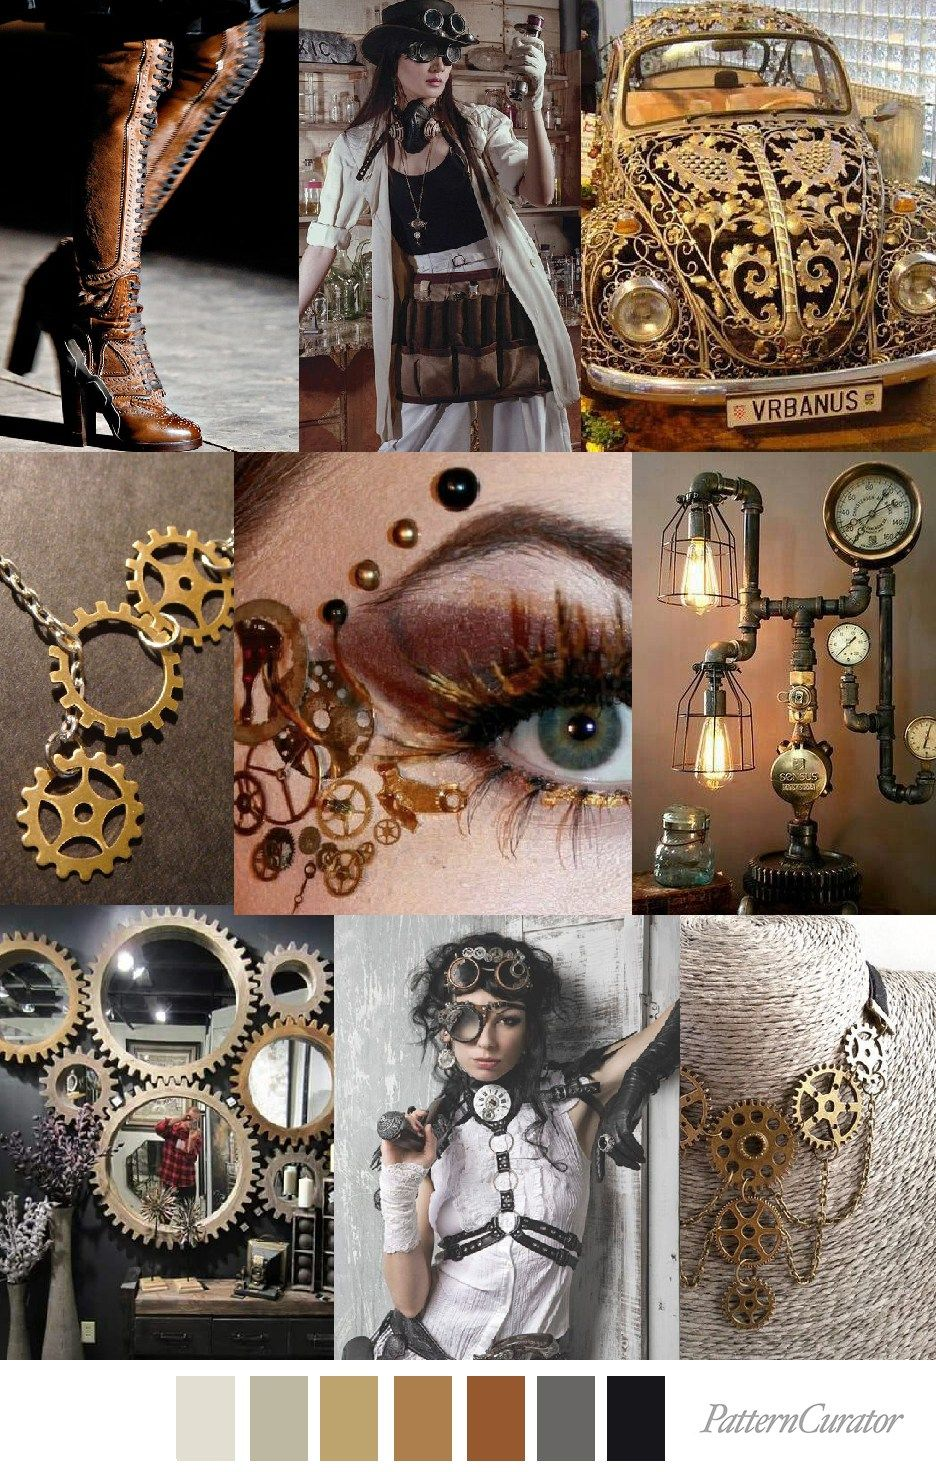 Pin on Steampunk/Goth reference.